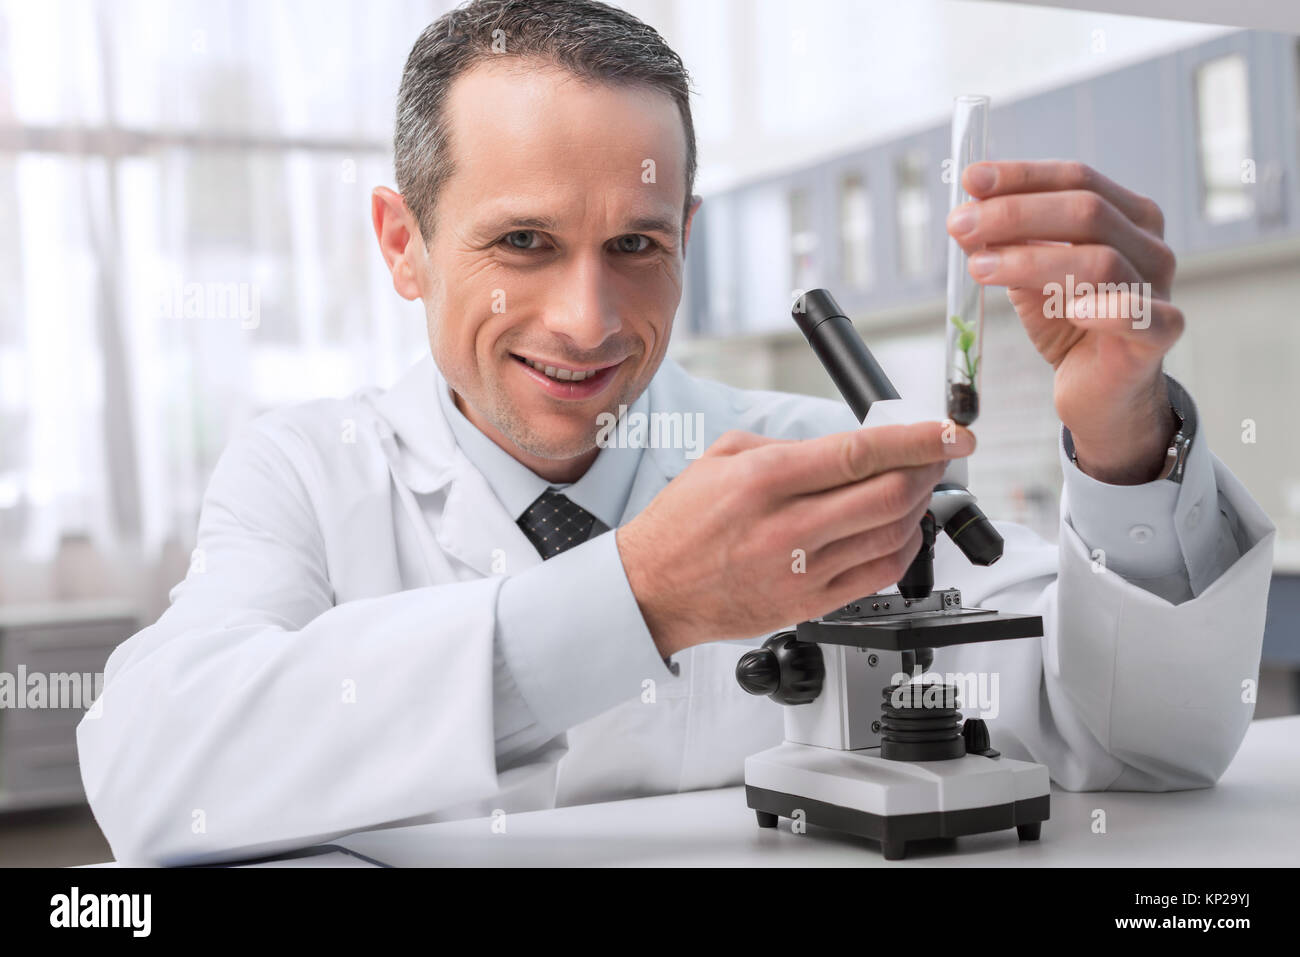 chemist working with sample - Stock Image